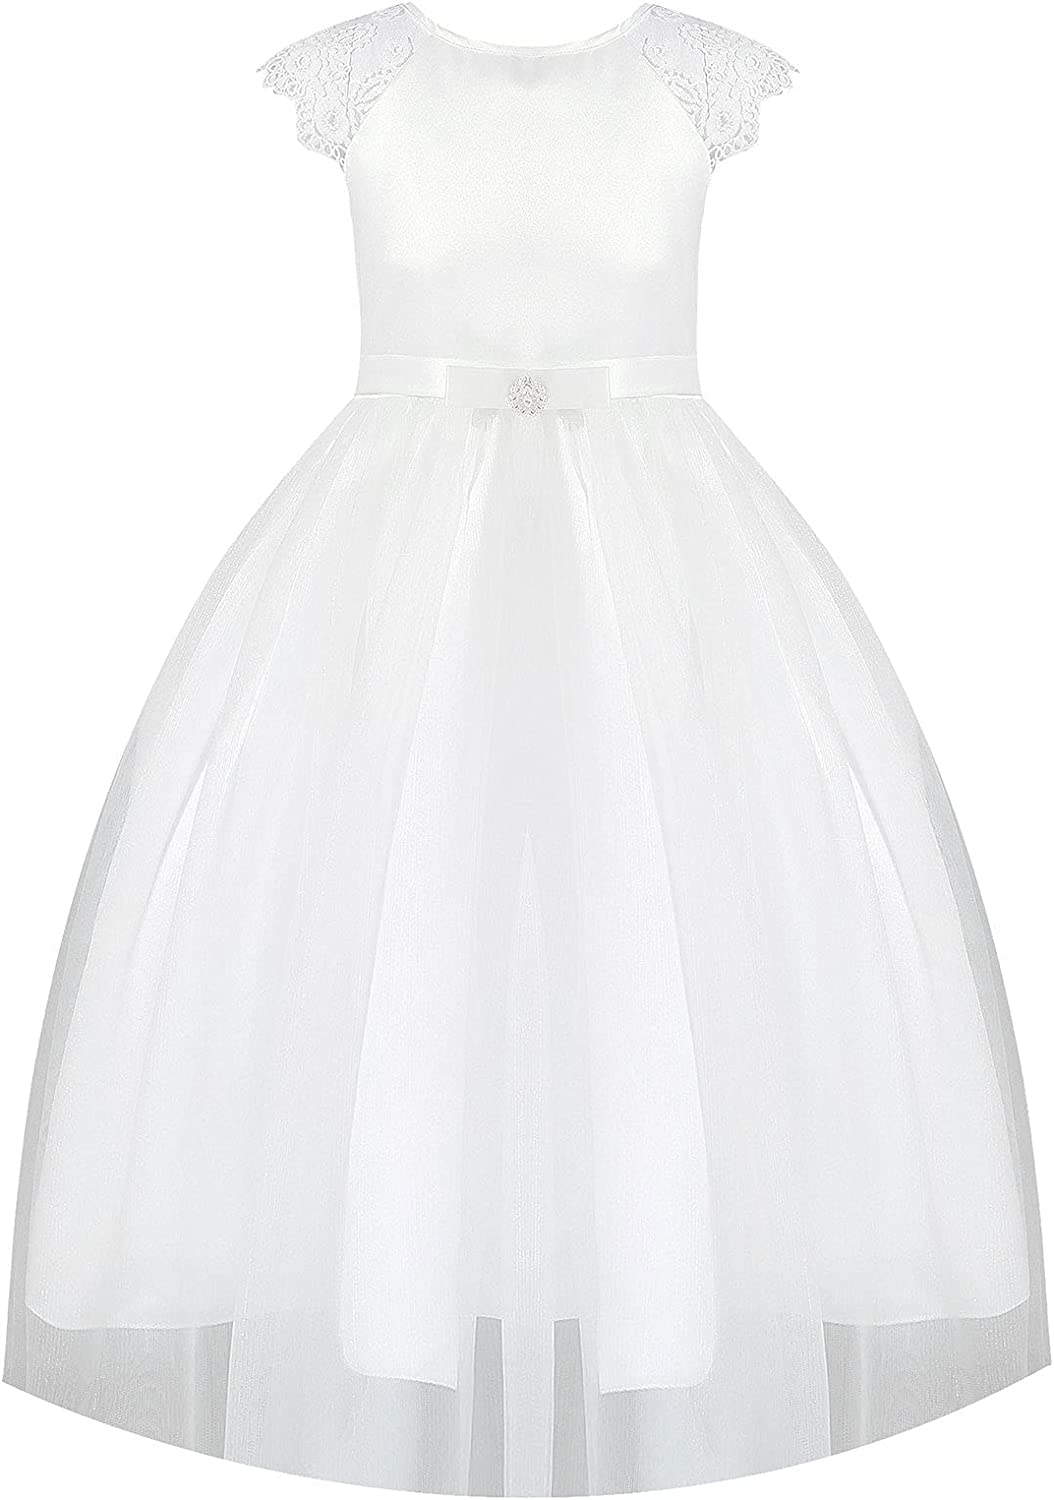 Duoremi Kids Flower Girls Lace Short Sleeve Tulle Dress Satin First Communion Party Formal Dresses